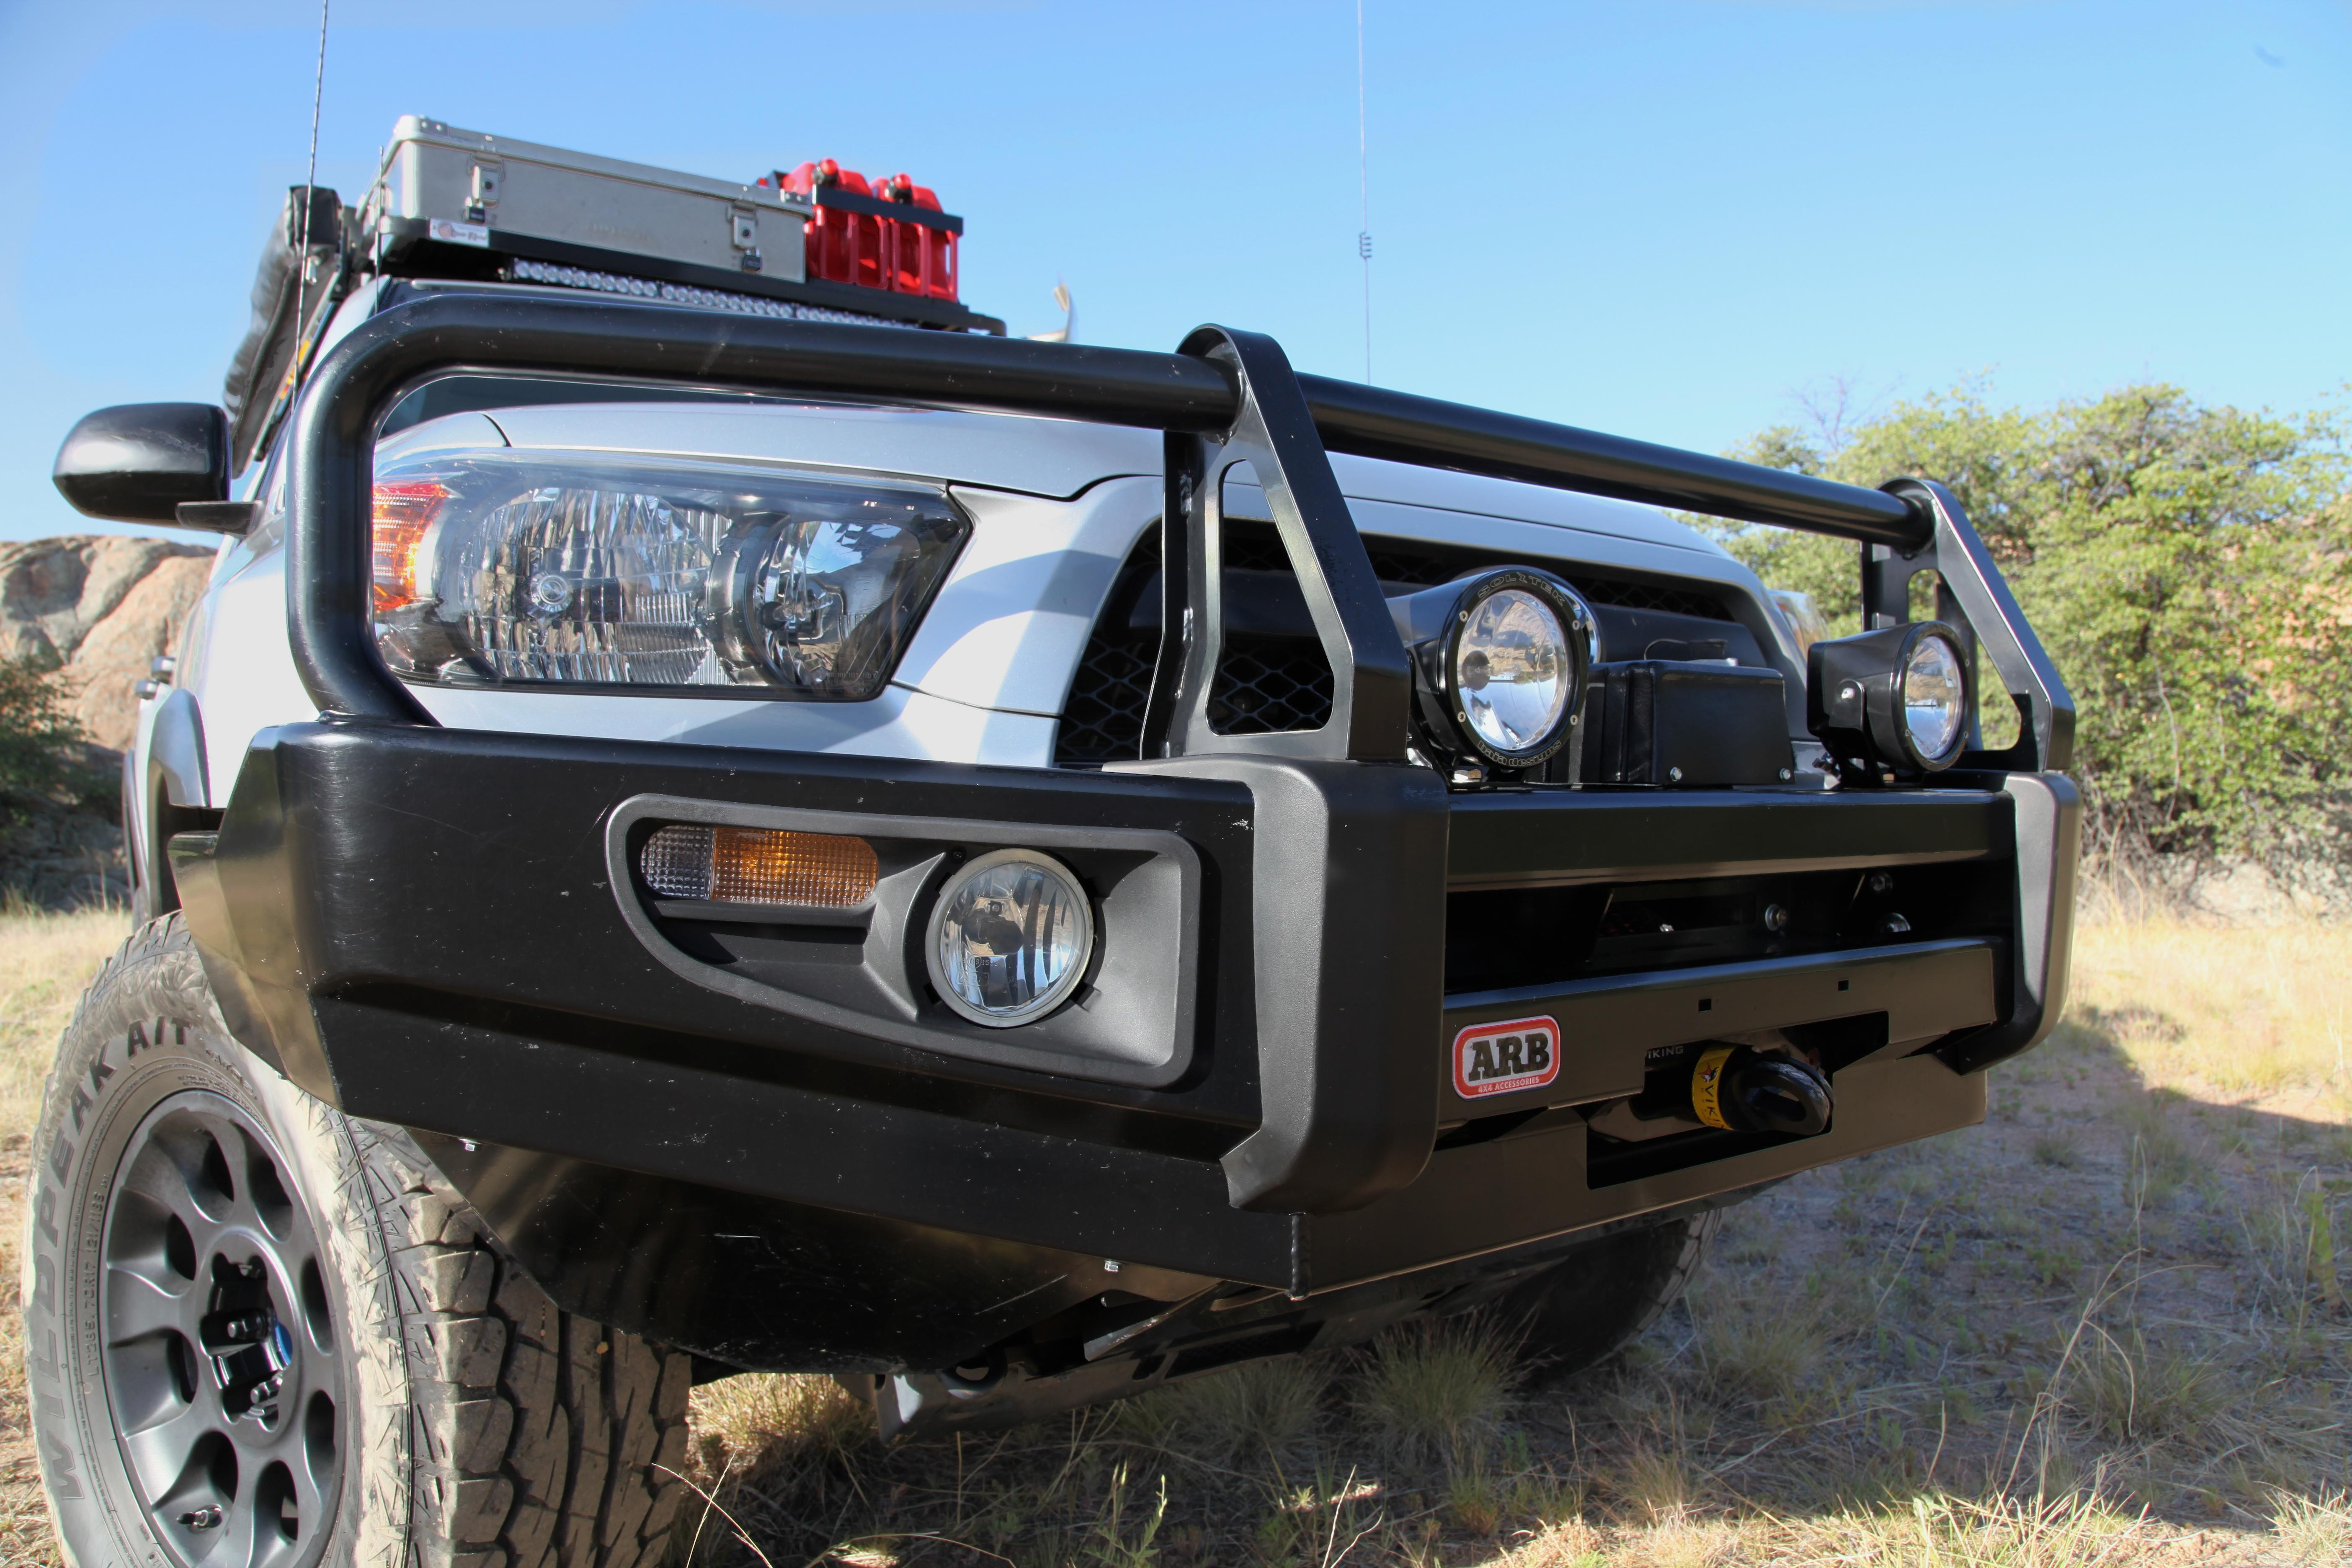 Starting With A 2013 Toyota 4Runner Trail Edition, Paul Quickly Set To Work  With A Series Of Key Modifications. He Added An OME 3 Inch Heavy Duty Lift  And ...